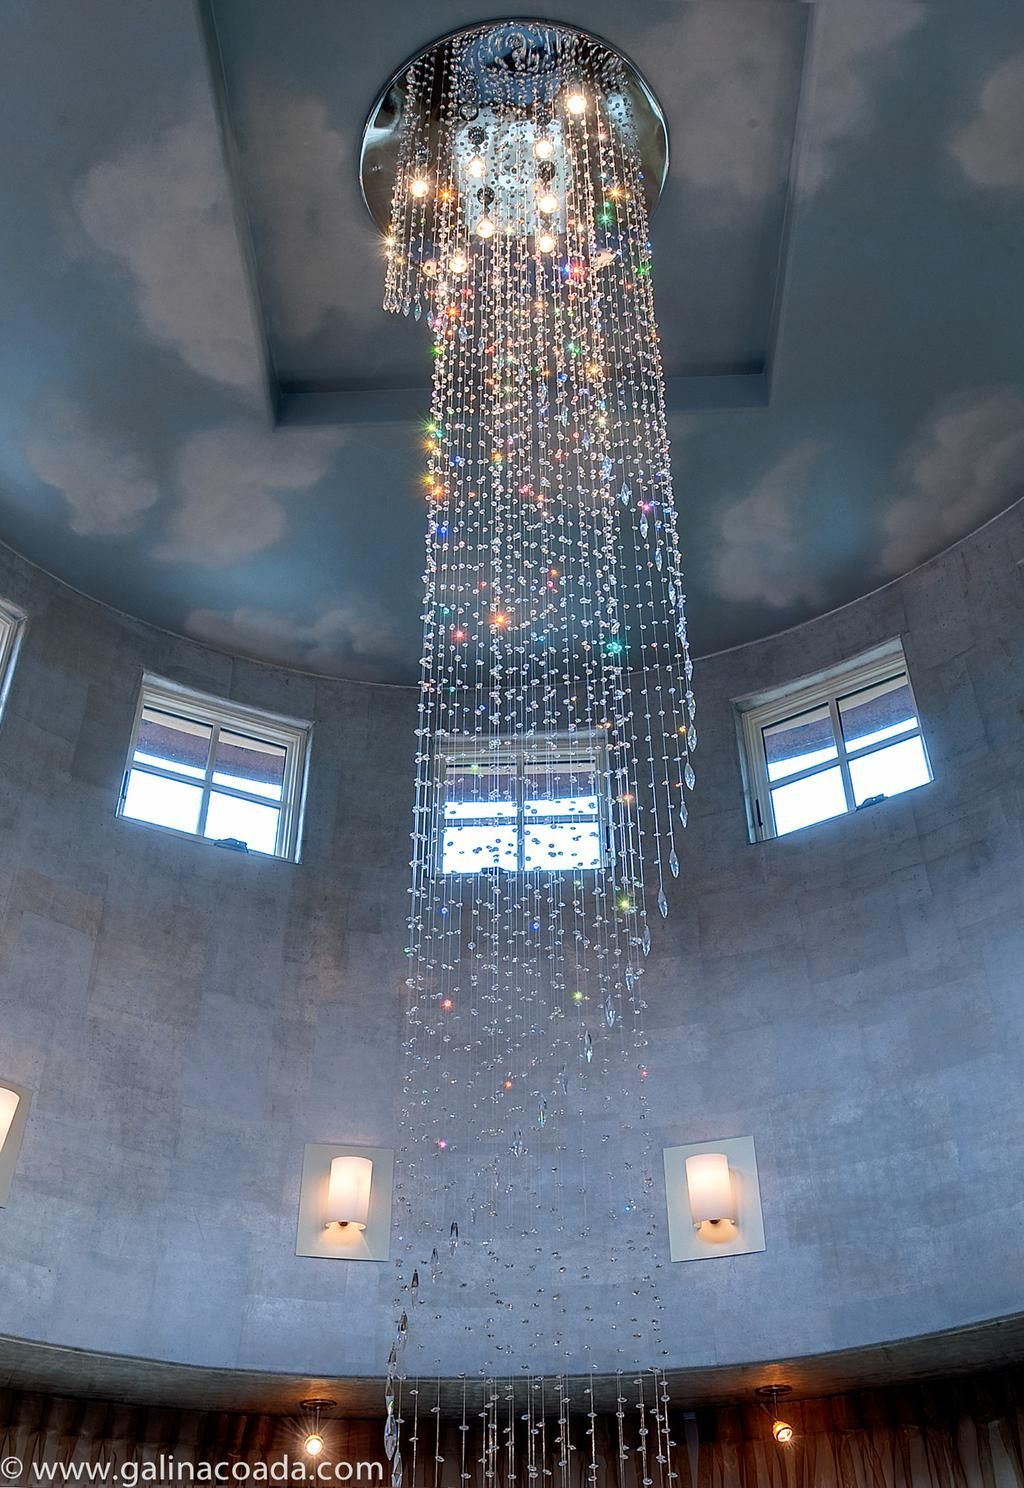 20 ft custom chandelier lights and more ideas pinterest 20 ft custom chandelier arubaitofo Image collections